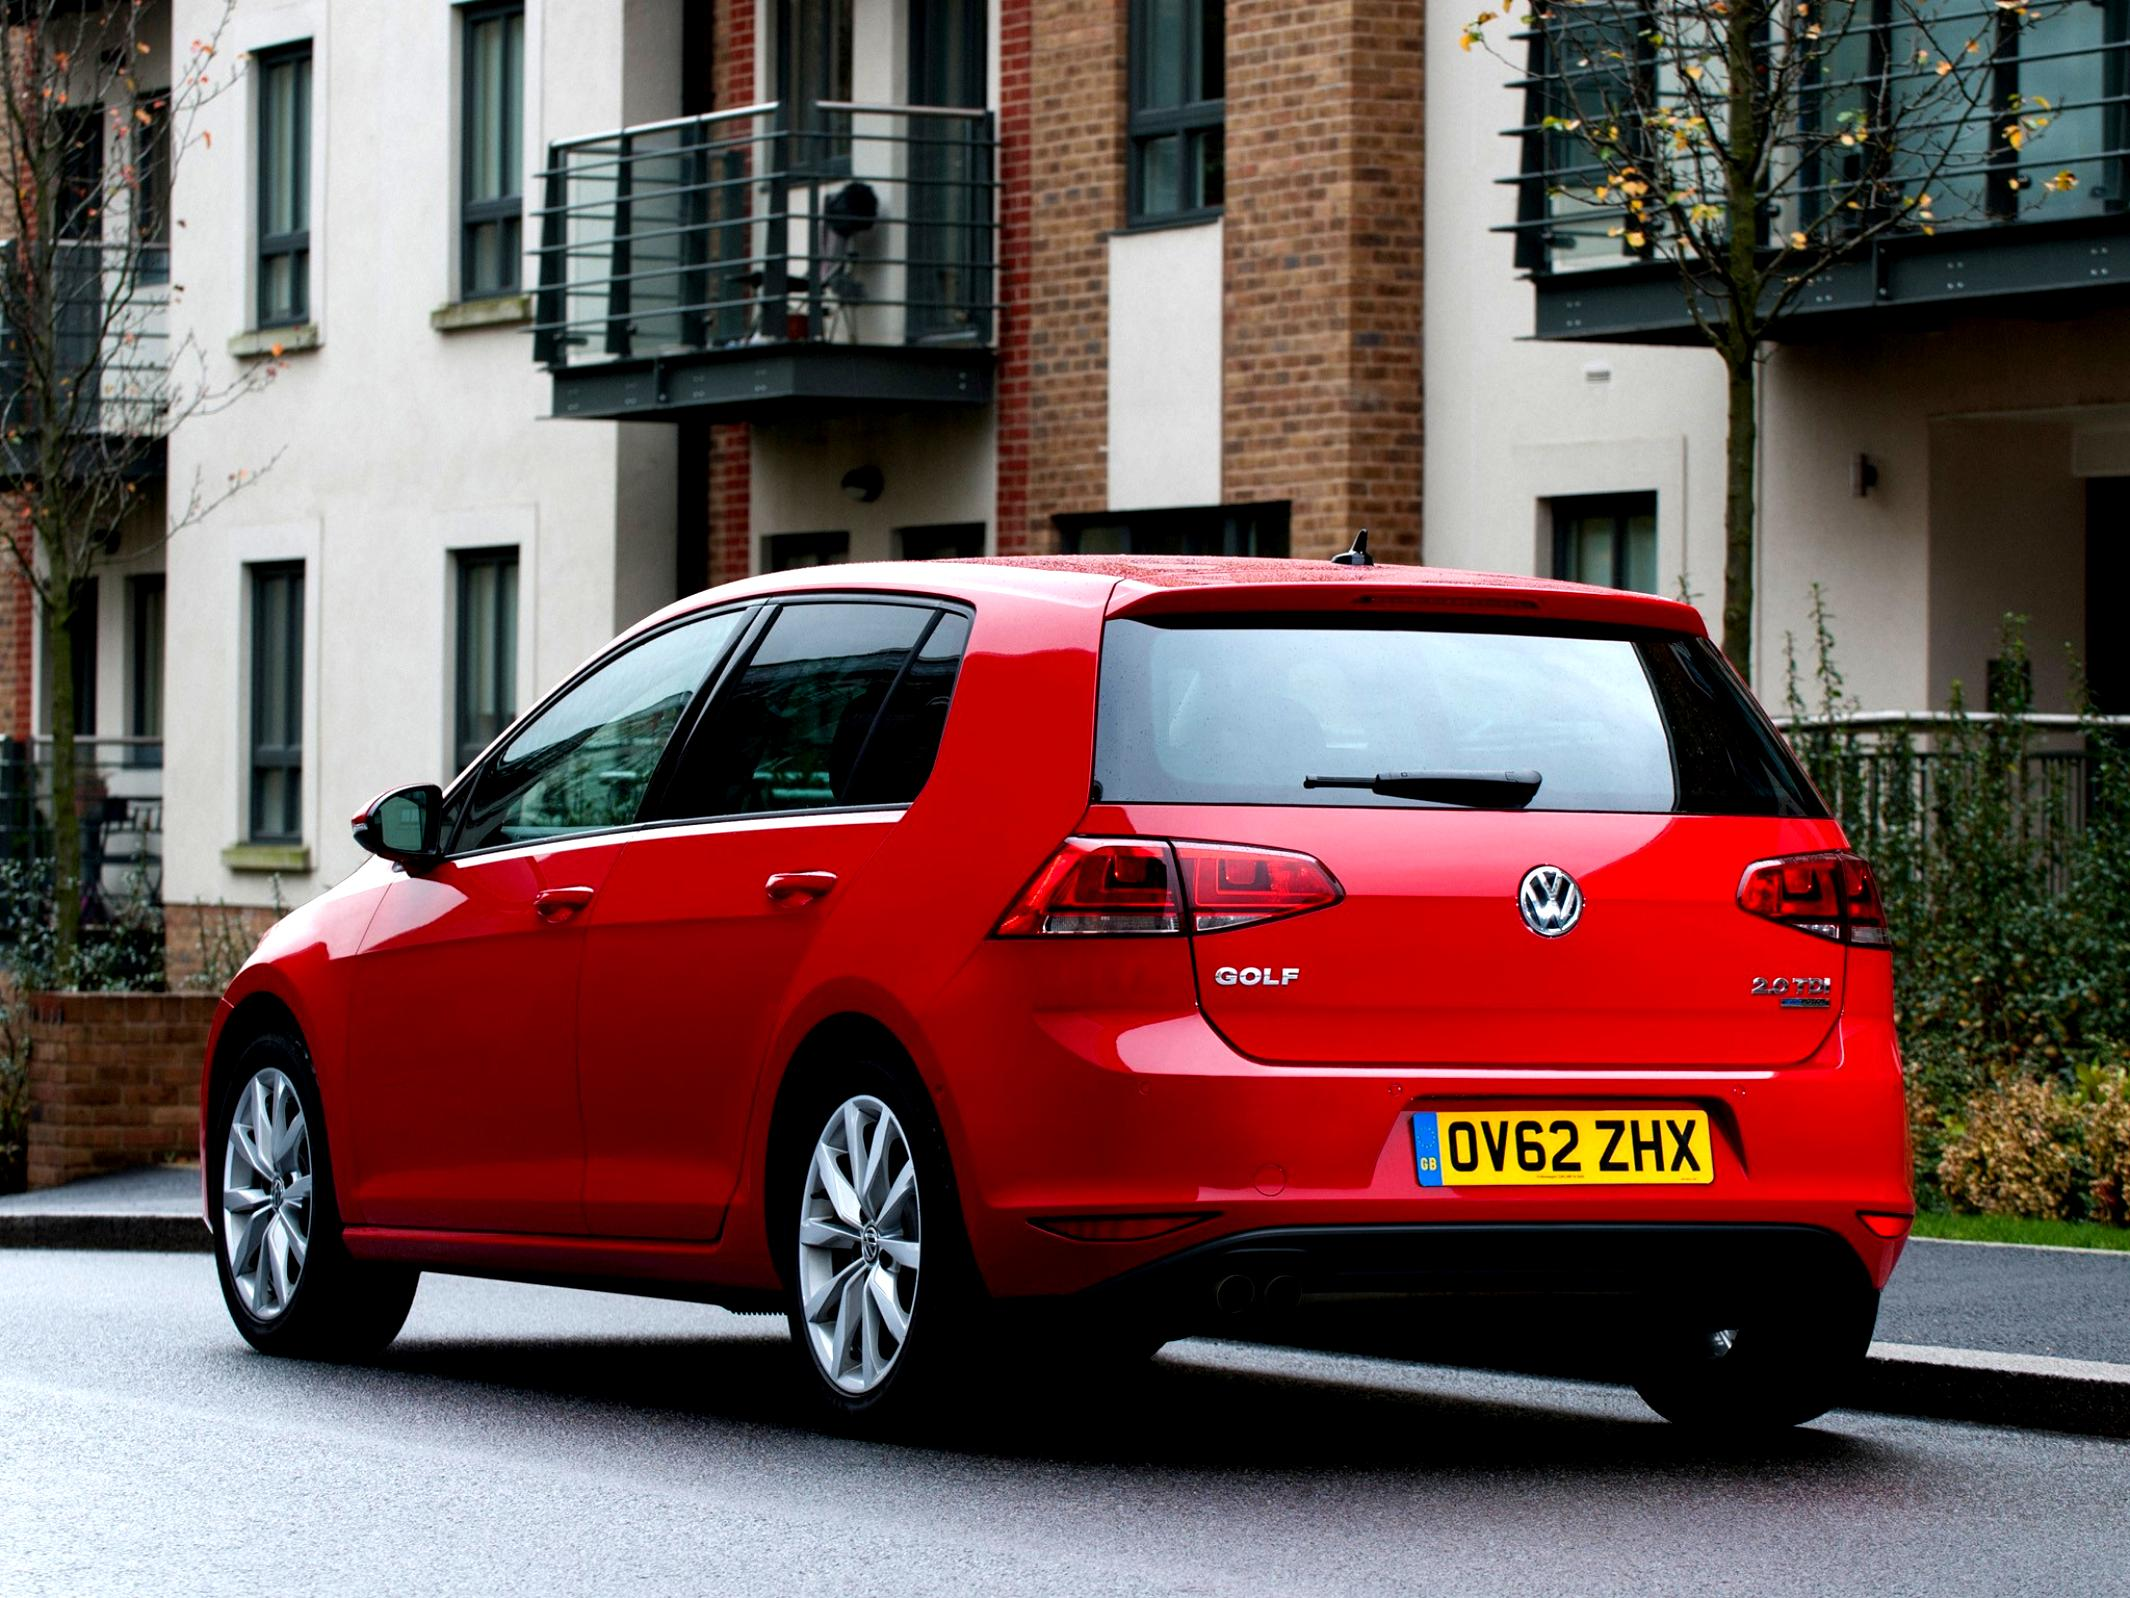 Volkswagen Golf VII 5 Doors 2012 #67